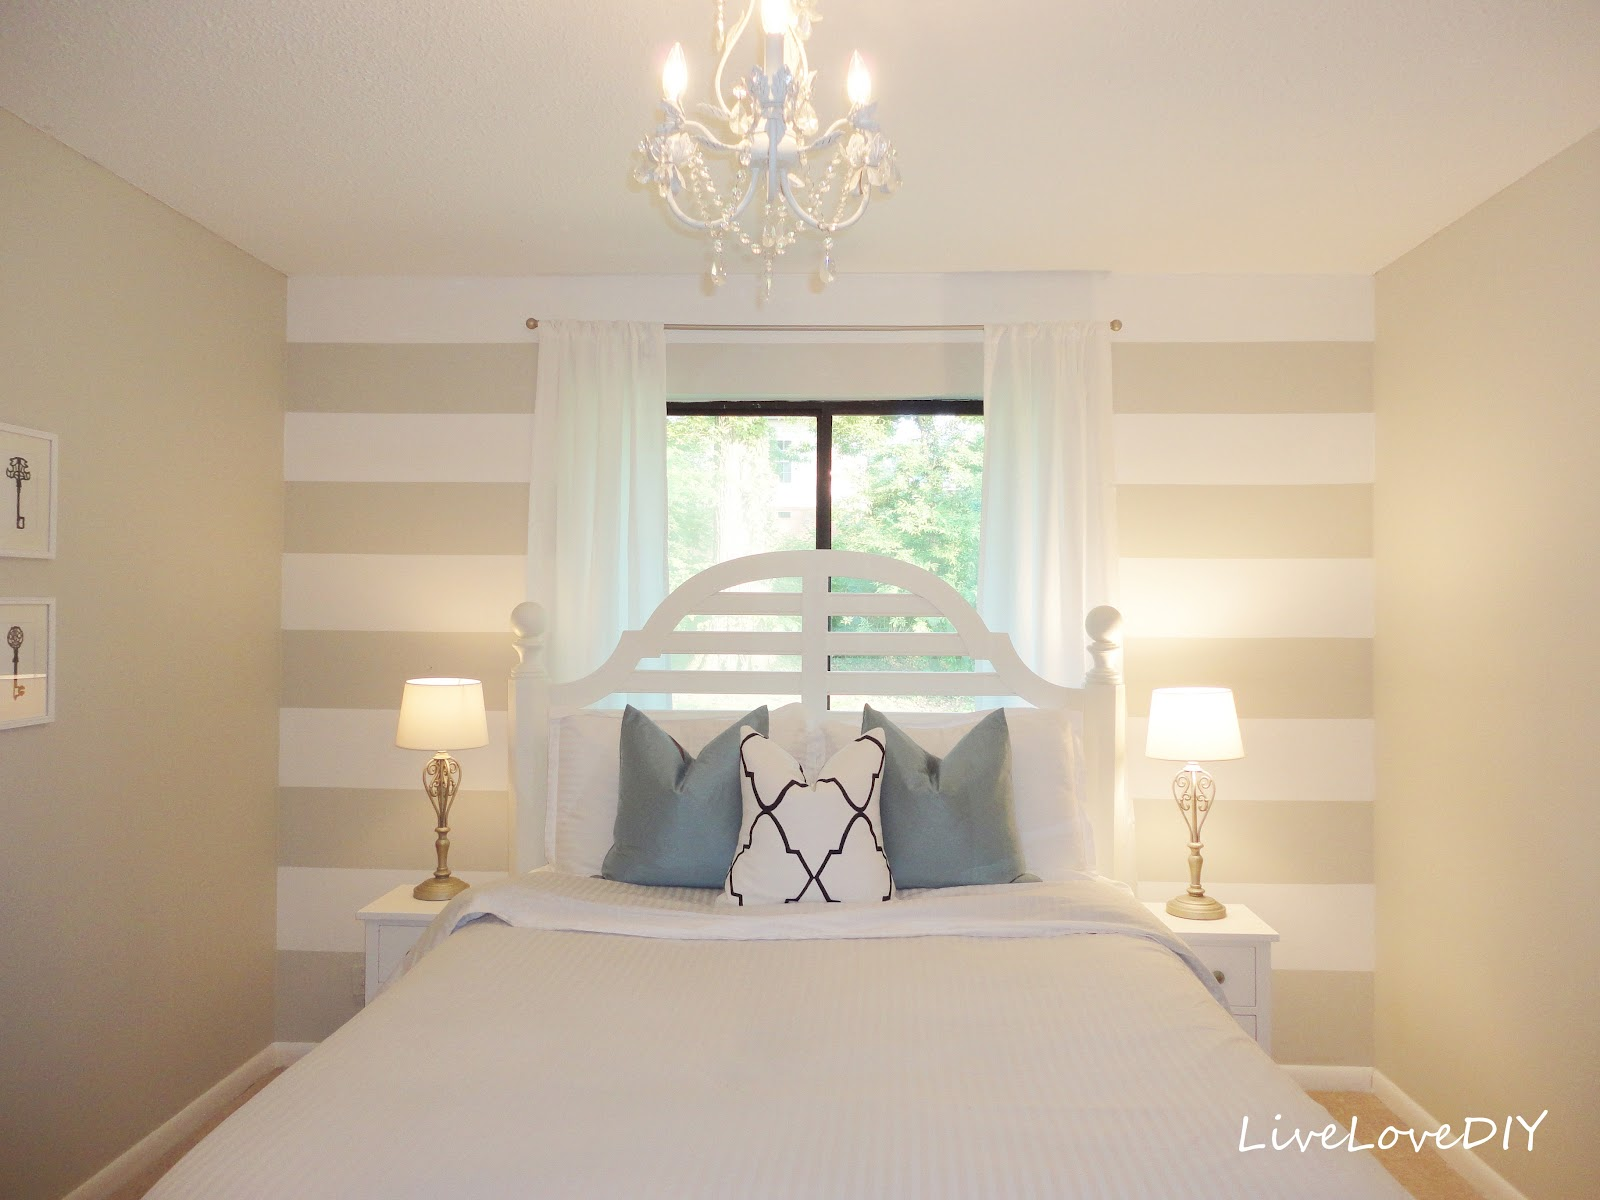 LiveLoveDIY DIY Striped Wall Guest Bedroom Makeover